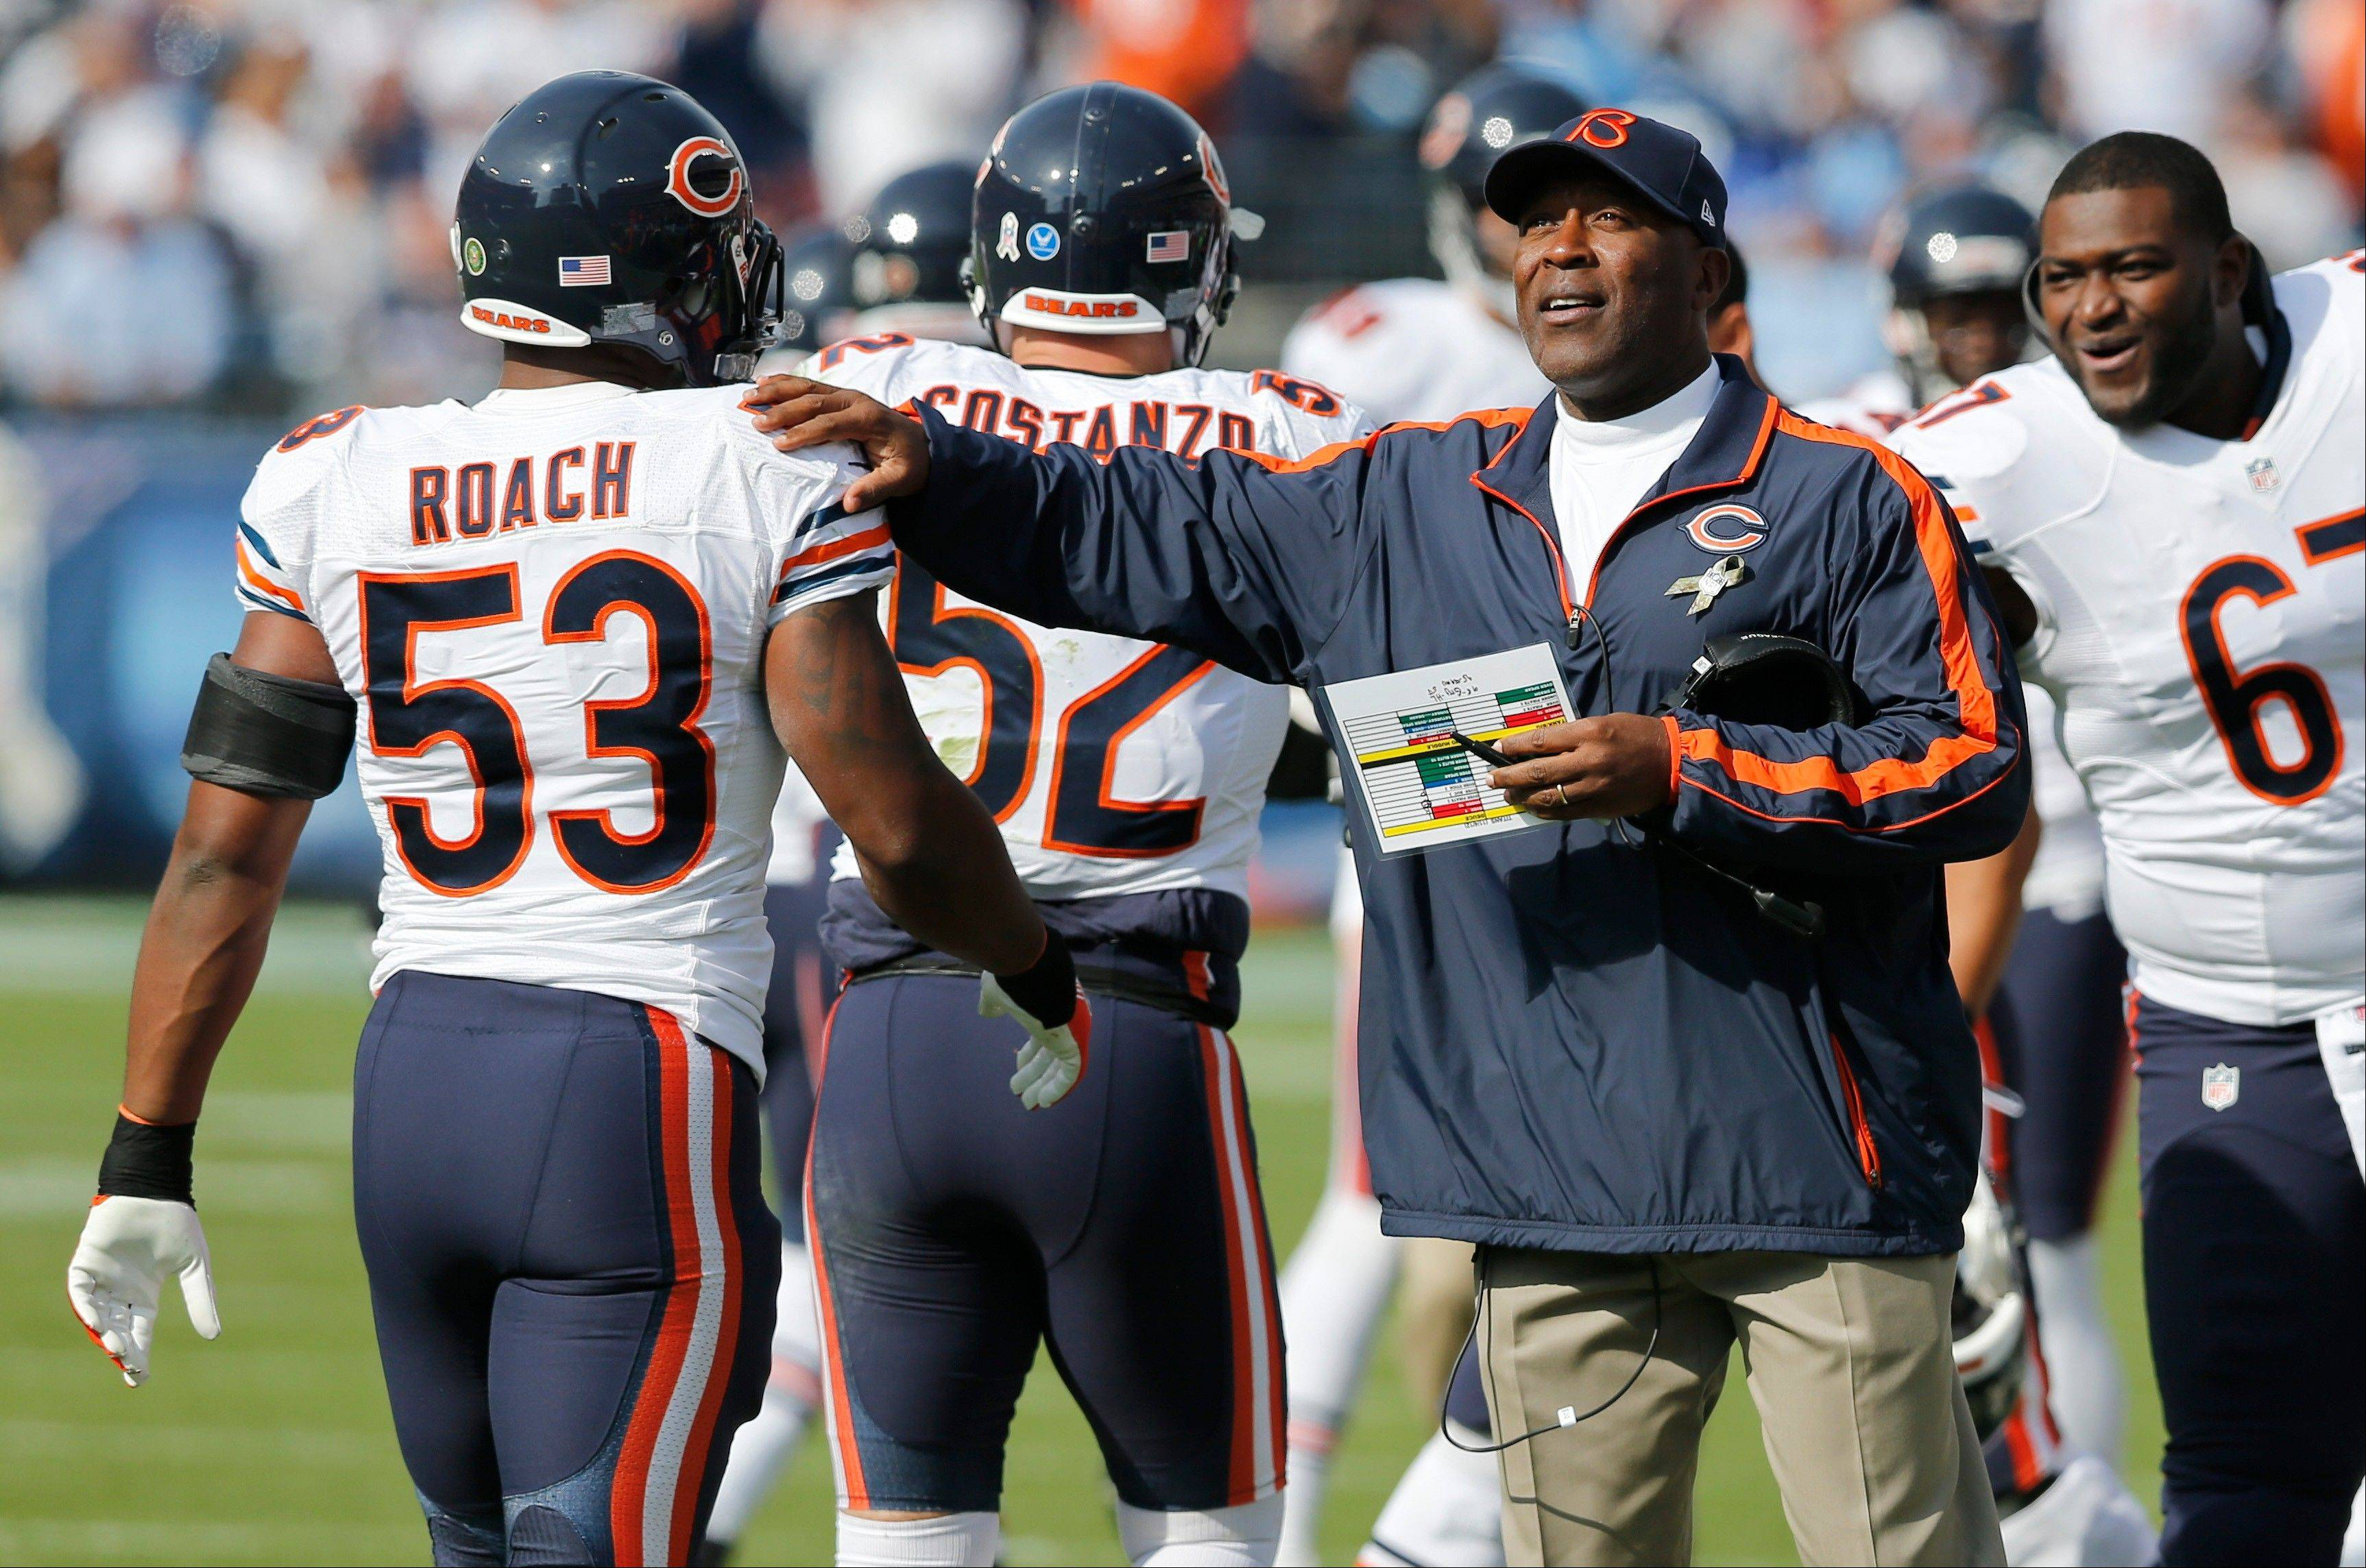 Chicago Bears head coach Lovie Smith congratulates outside linebacker Nick Roach after the Bears scored a touchdown on a blocked punt against the Tennessee Titans in the first quarter.